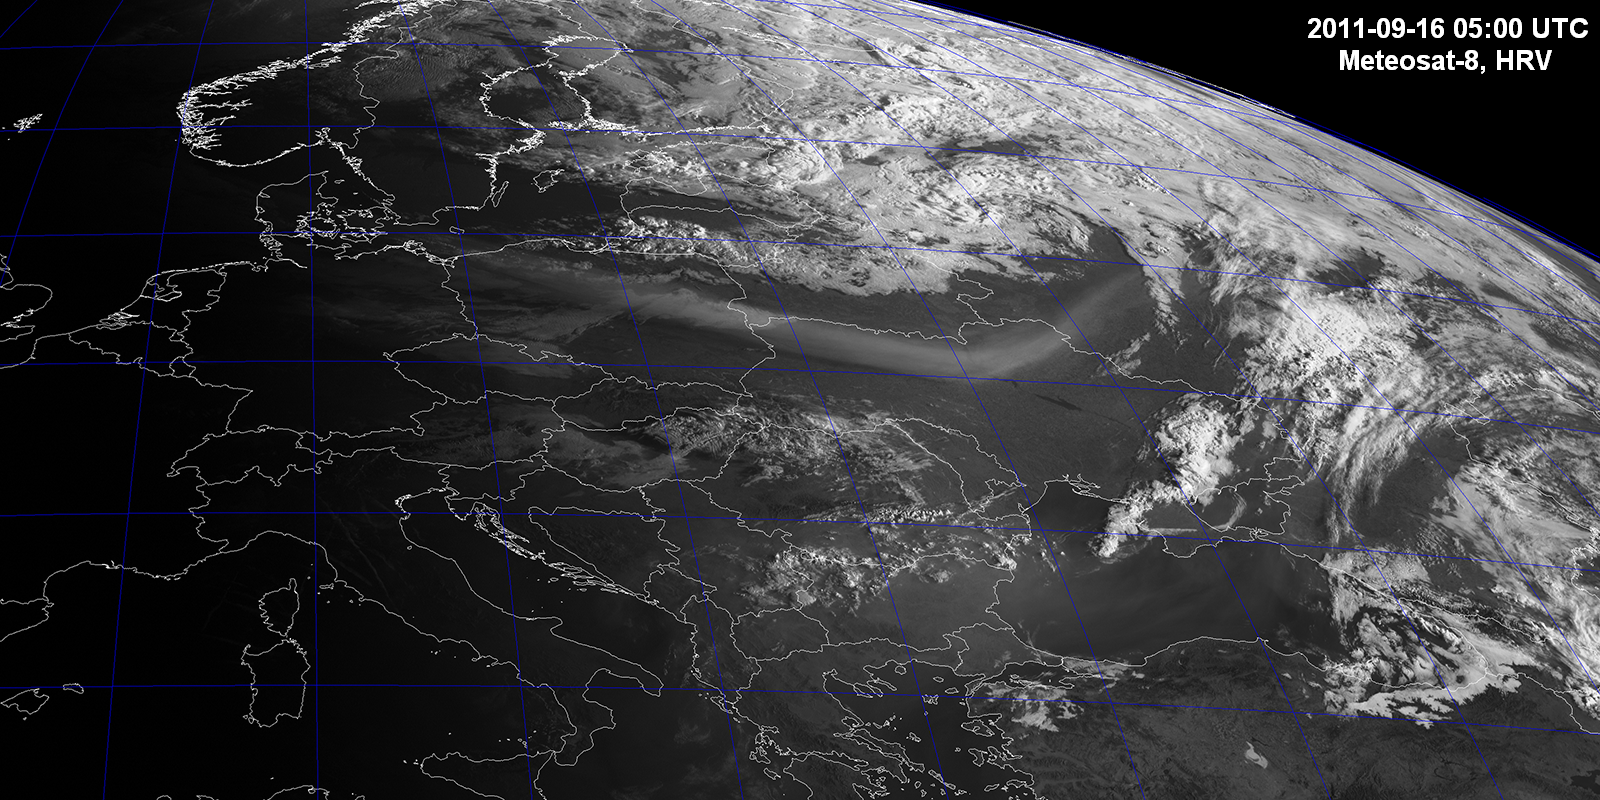 Smoke from Minnesota fires over Europe